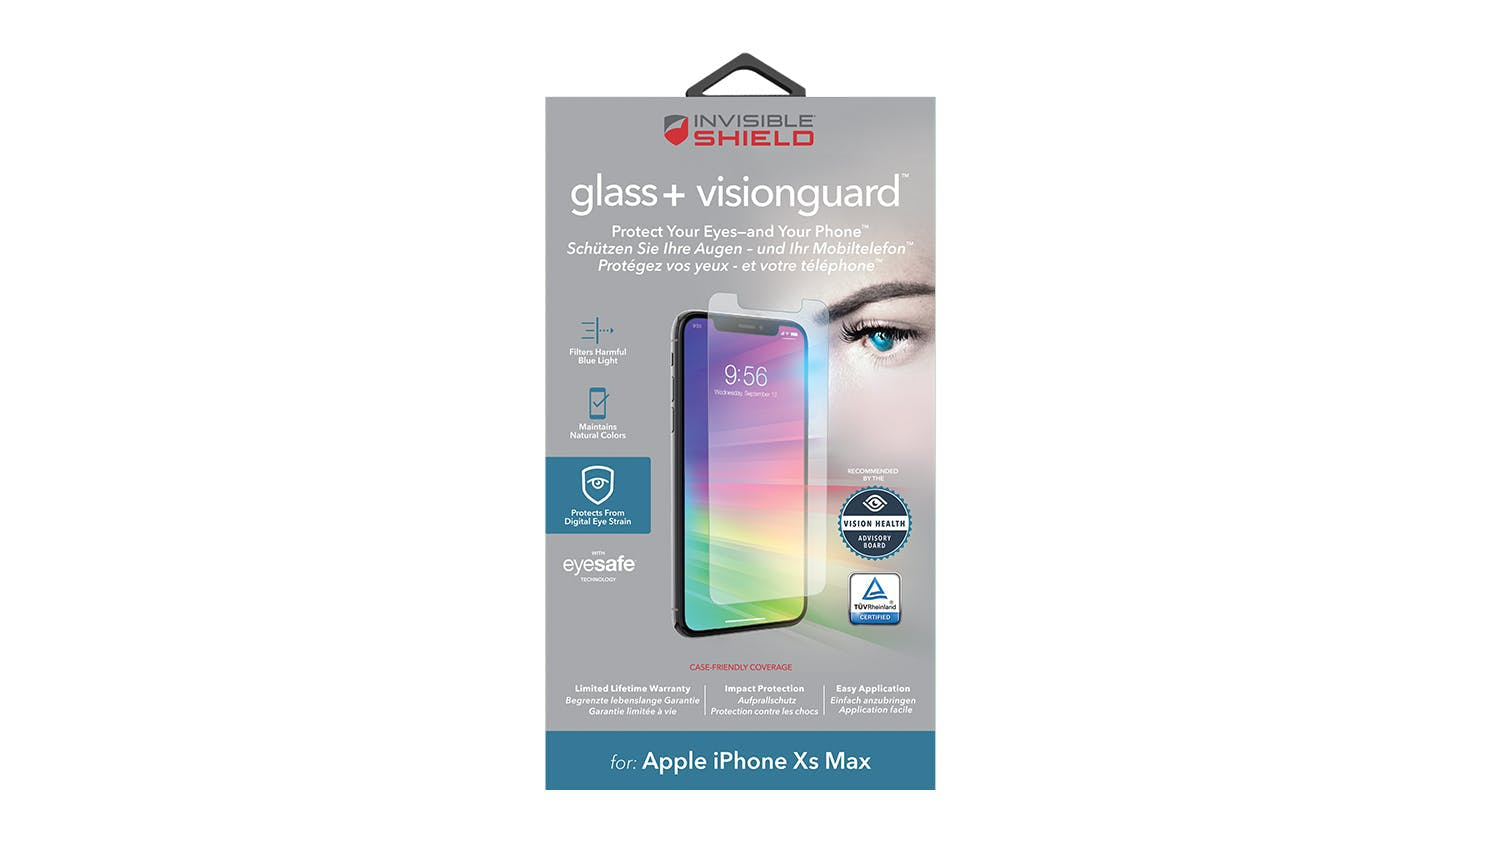 Zagg Invisibleshield Glass+ VisionGuard Screen Protector for iPhone XS Max